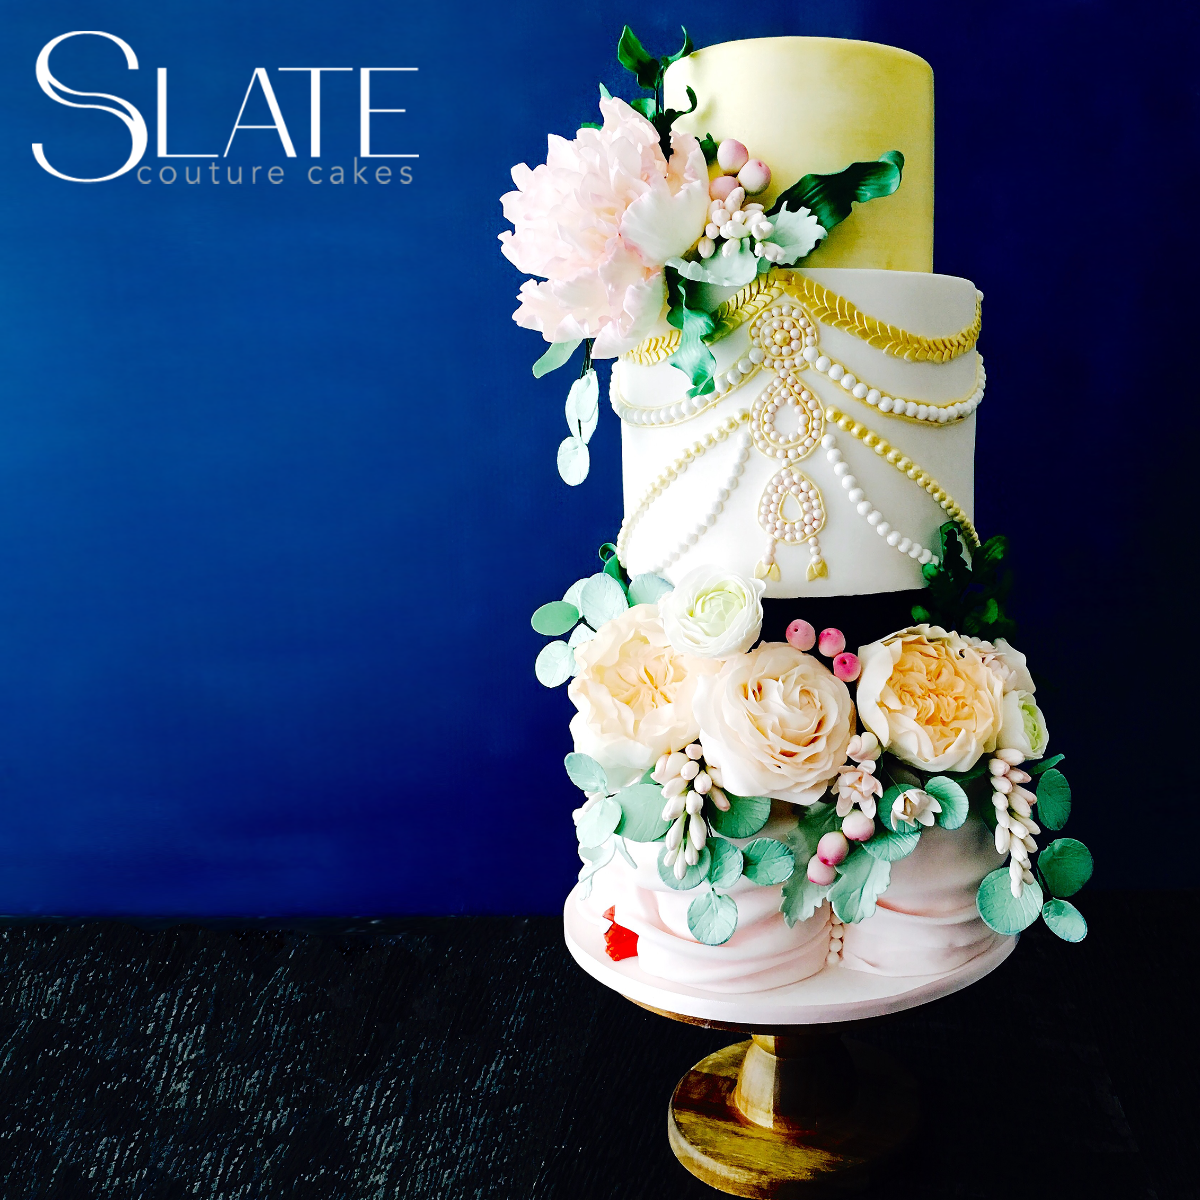 Yellow white and light pink art deco themed wedding cake with sugar flowers